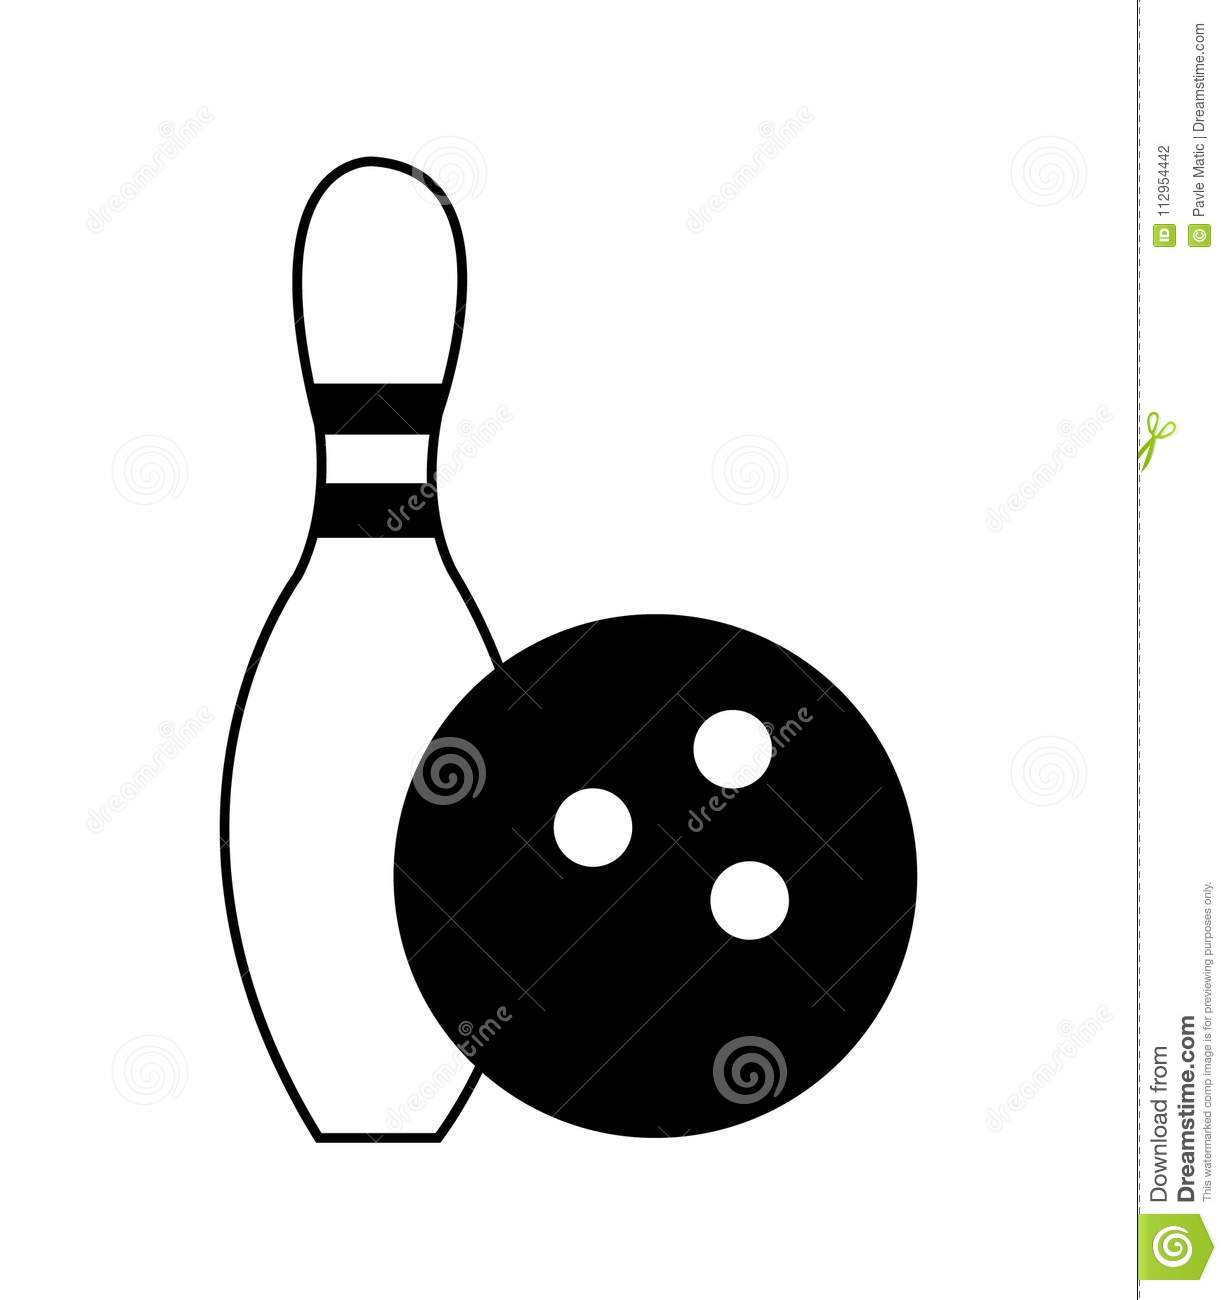 Simple, Black And White Bowling Pin Icon Stock Vector.